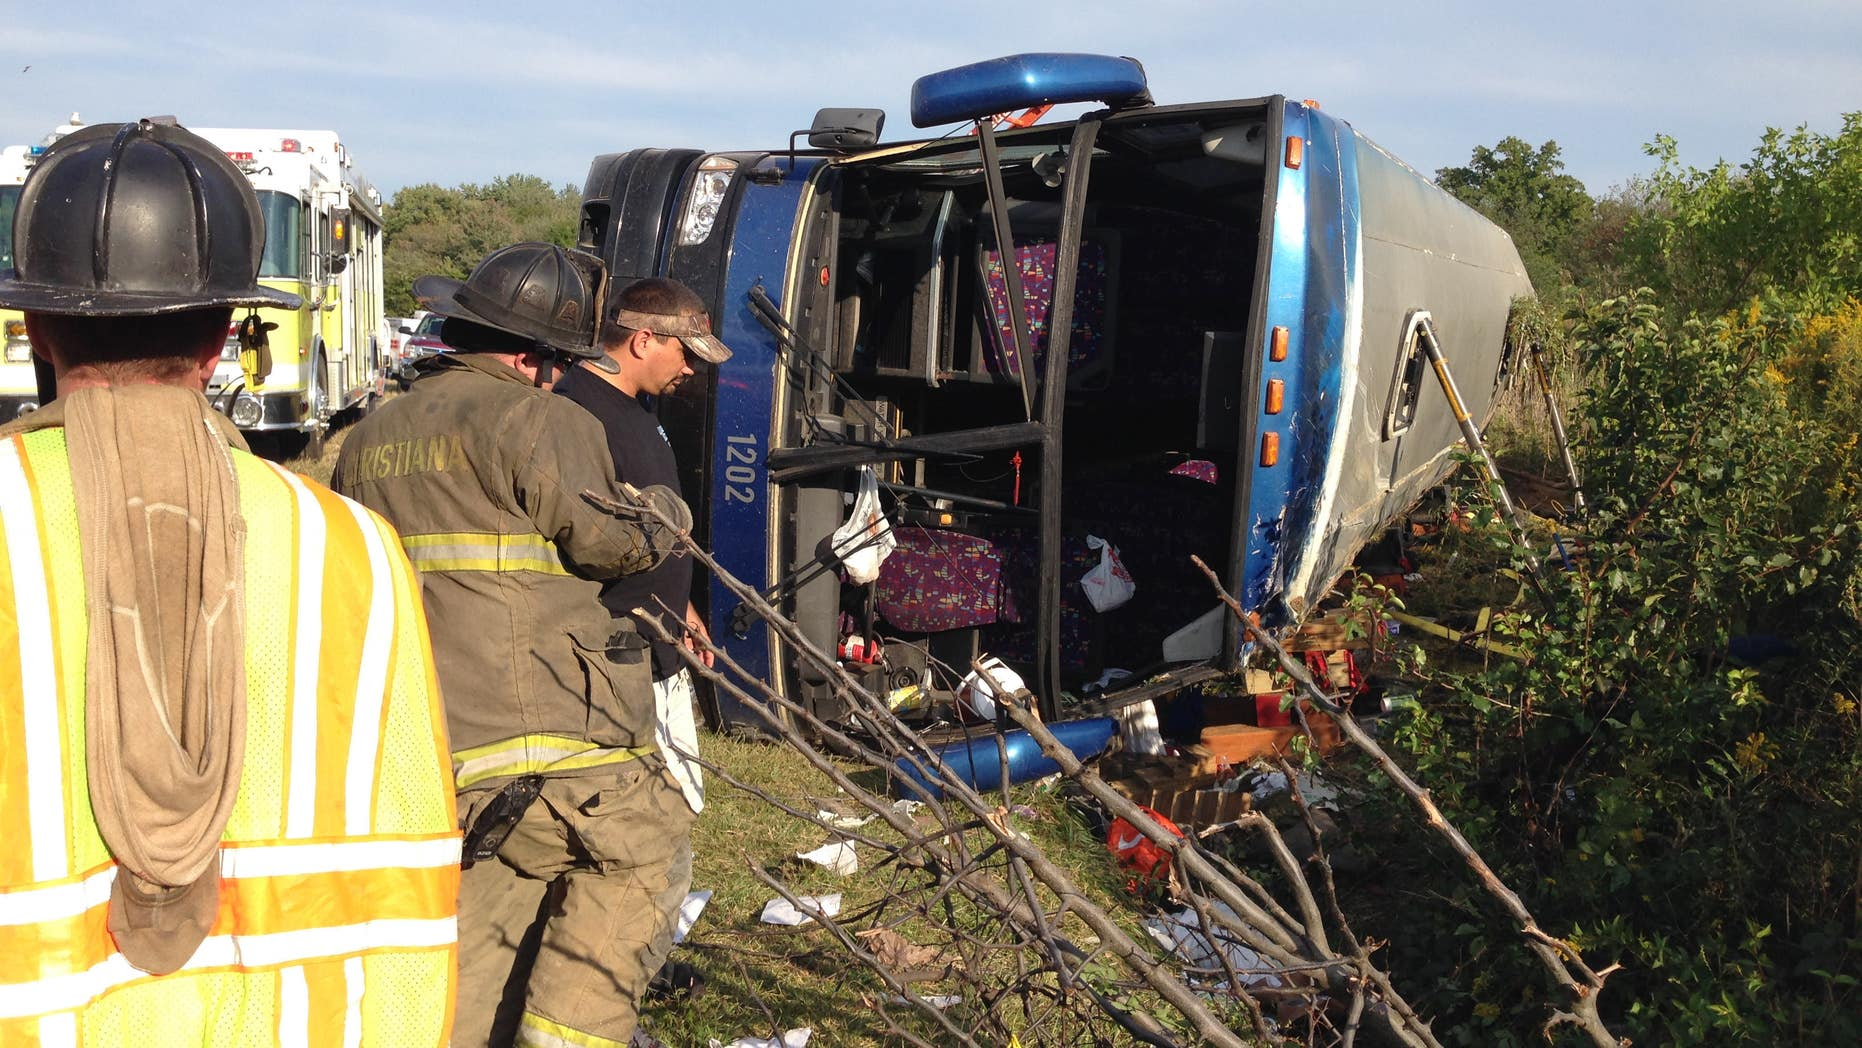 Sept. 21, 2014: Passengers from a tour bus are treated for injuries near the overturned bus at the Tybouts Corner on ramp from southbound Del. 1 to Red Lion Road.